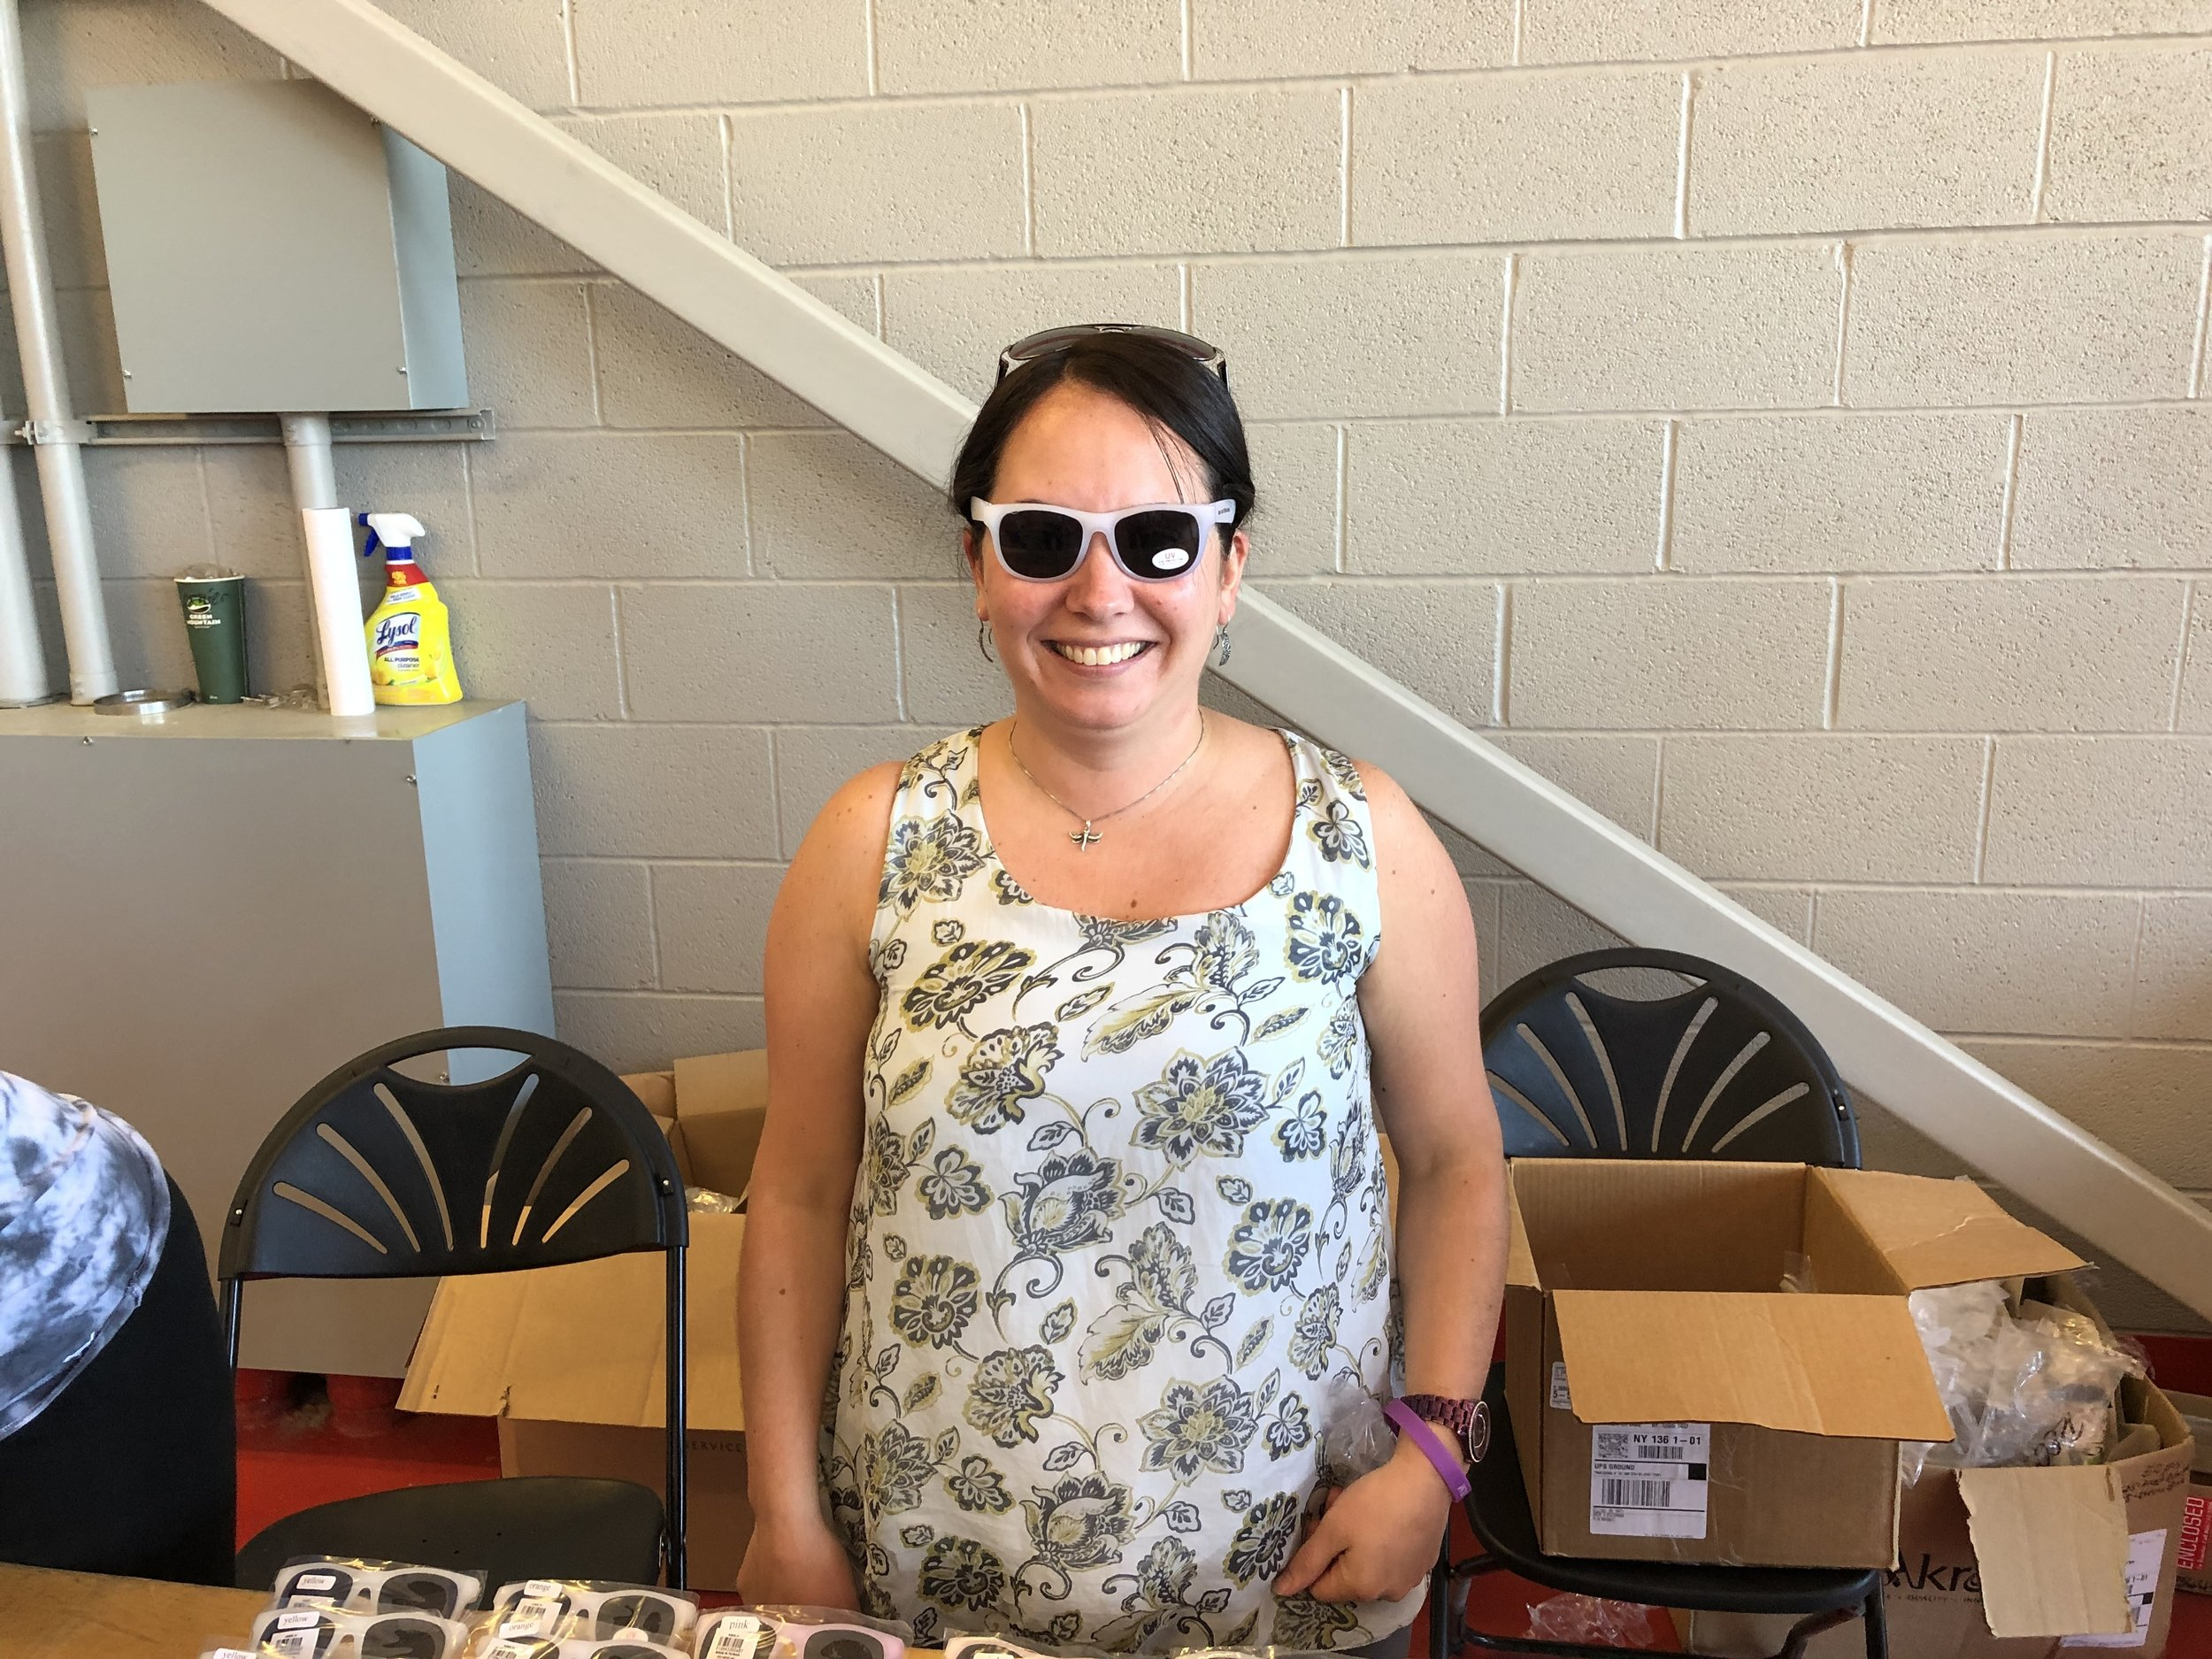 Amanda Amell was one of the volunteers distributing a handful of police department souvenirs including sun glasses, which she was trying on, frisbees, digital wrist lights, water bottles, all that could be carried home in a nice PD bag.